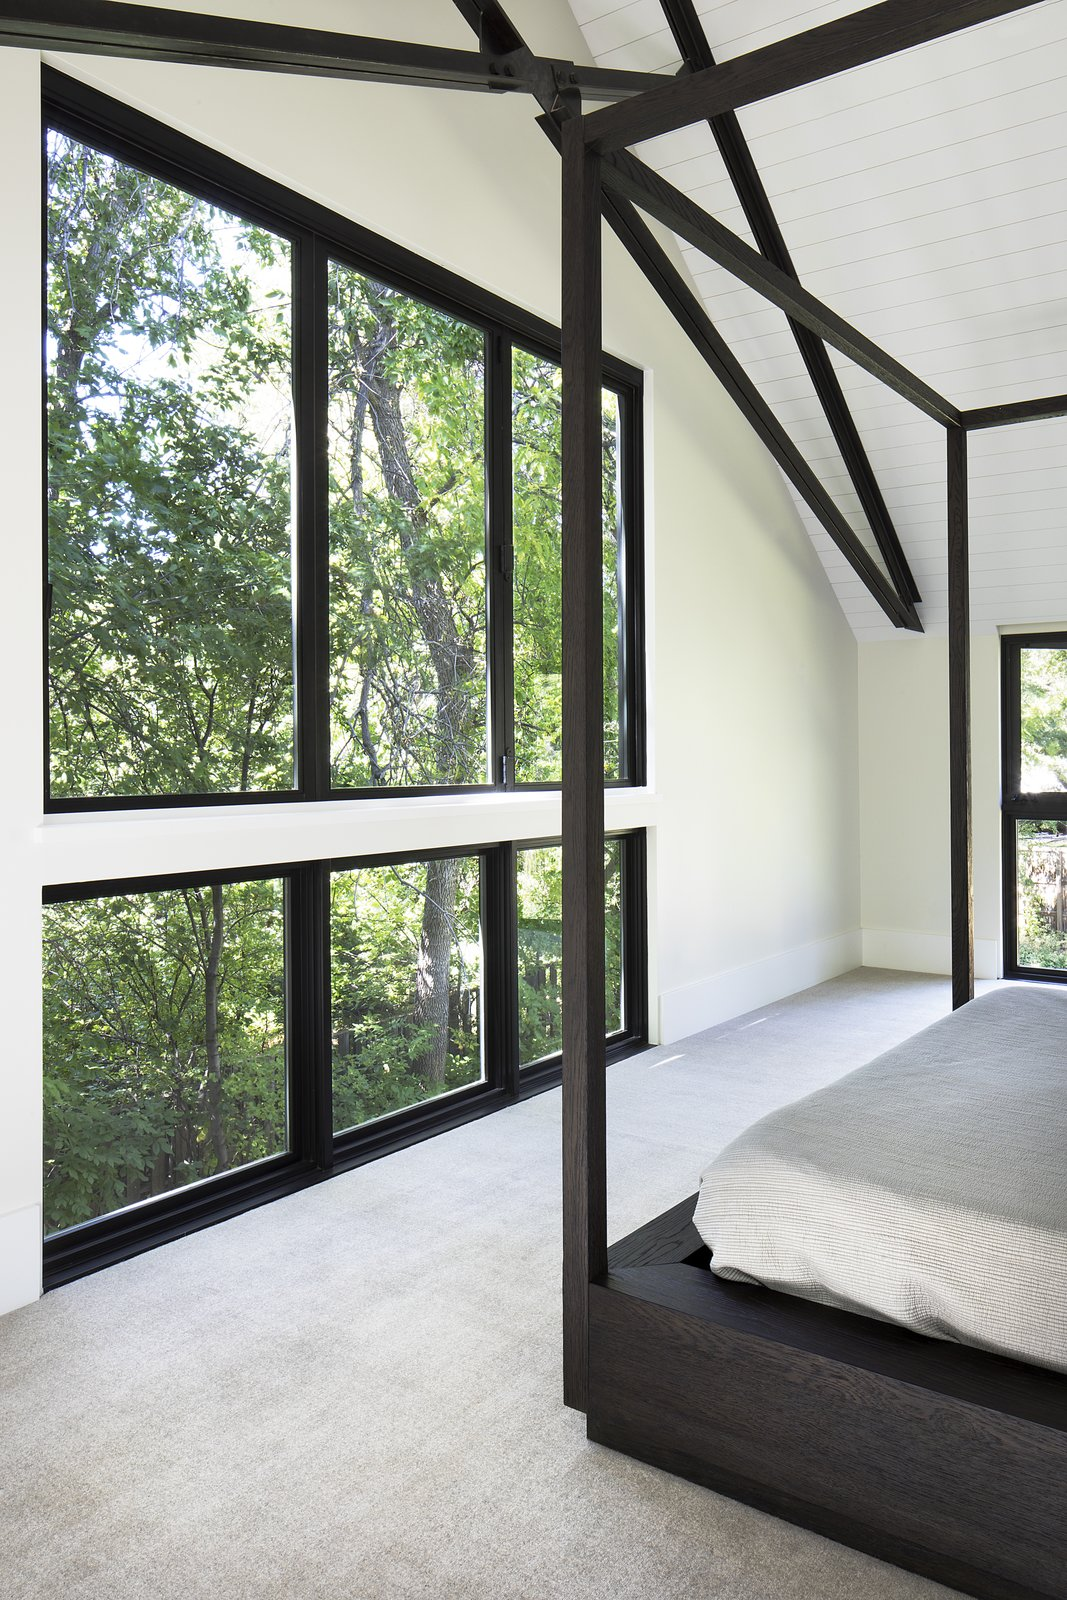 Inspired by historic farmhouses, beams are left exposed in the bedroom ceiling.